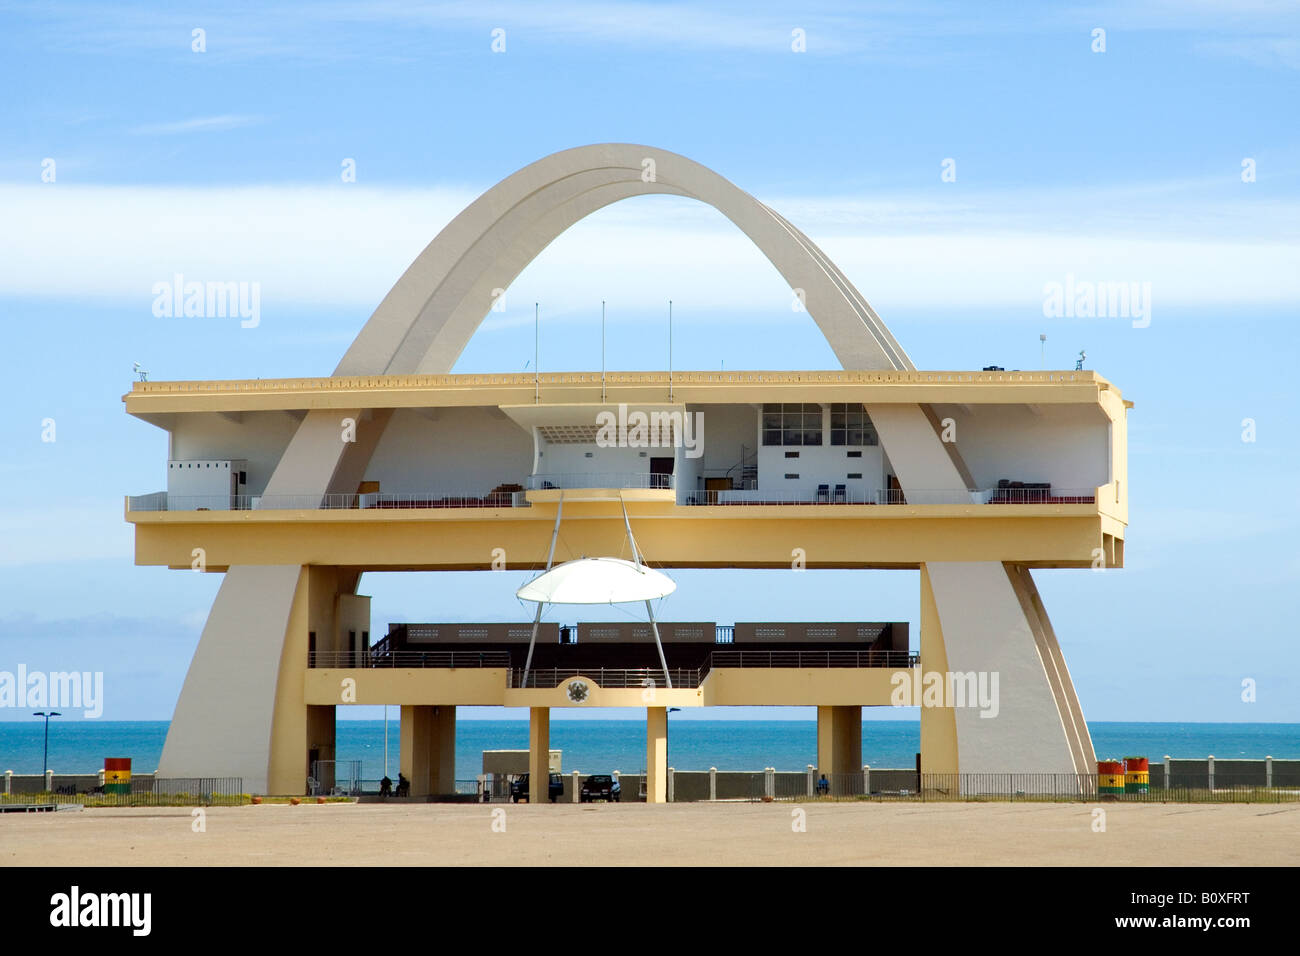 Independence Arch, Accra, Ghana - Stock Image